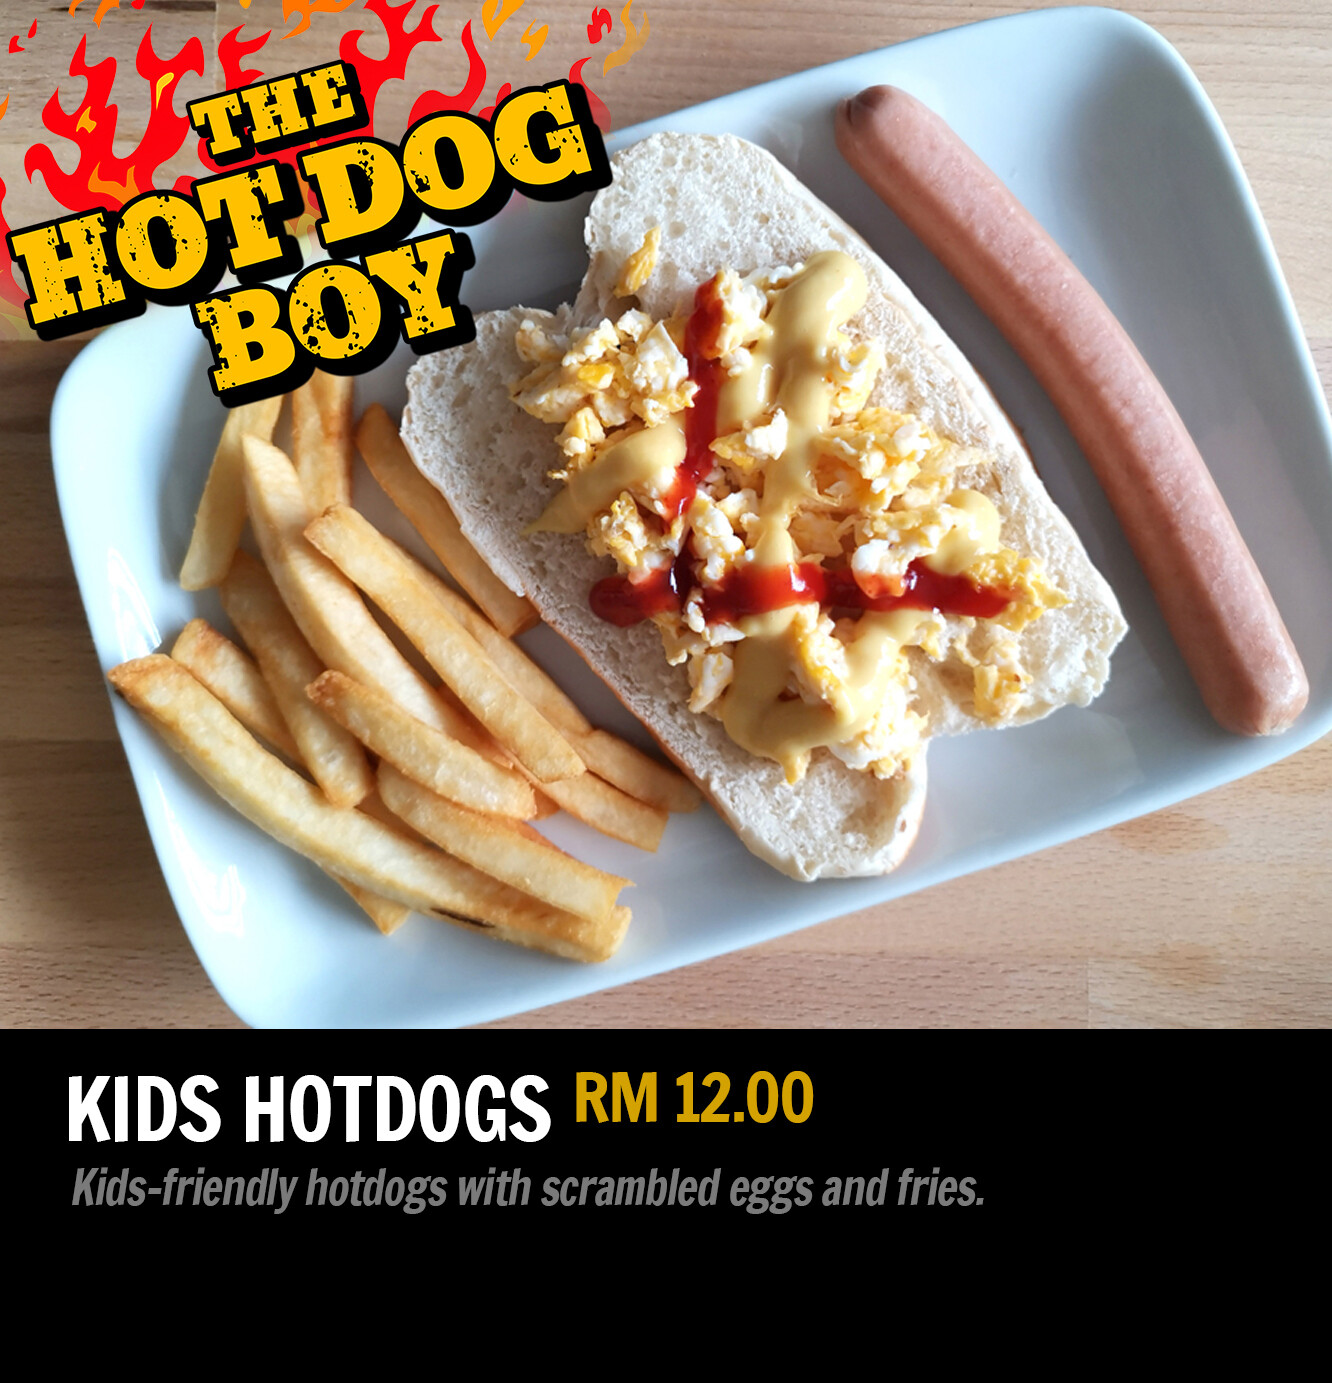 Kids Hotdogs